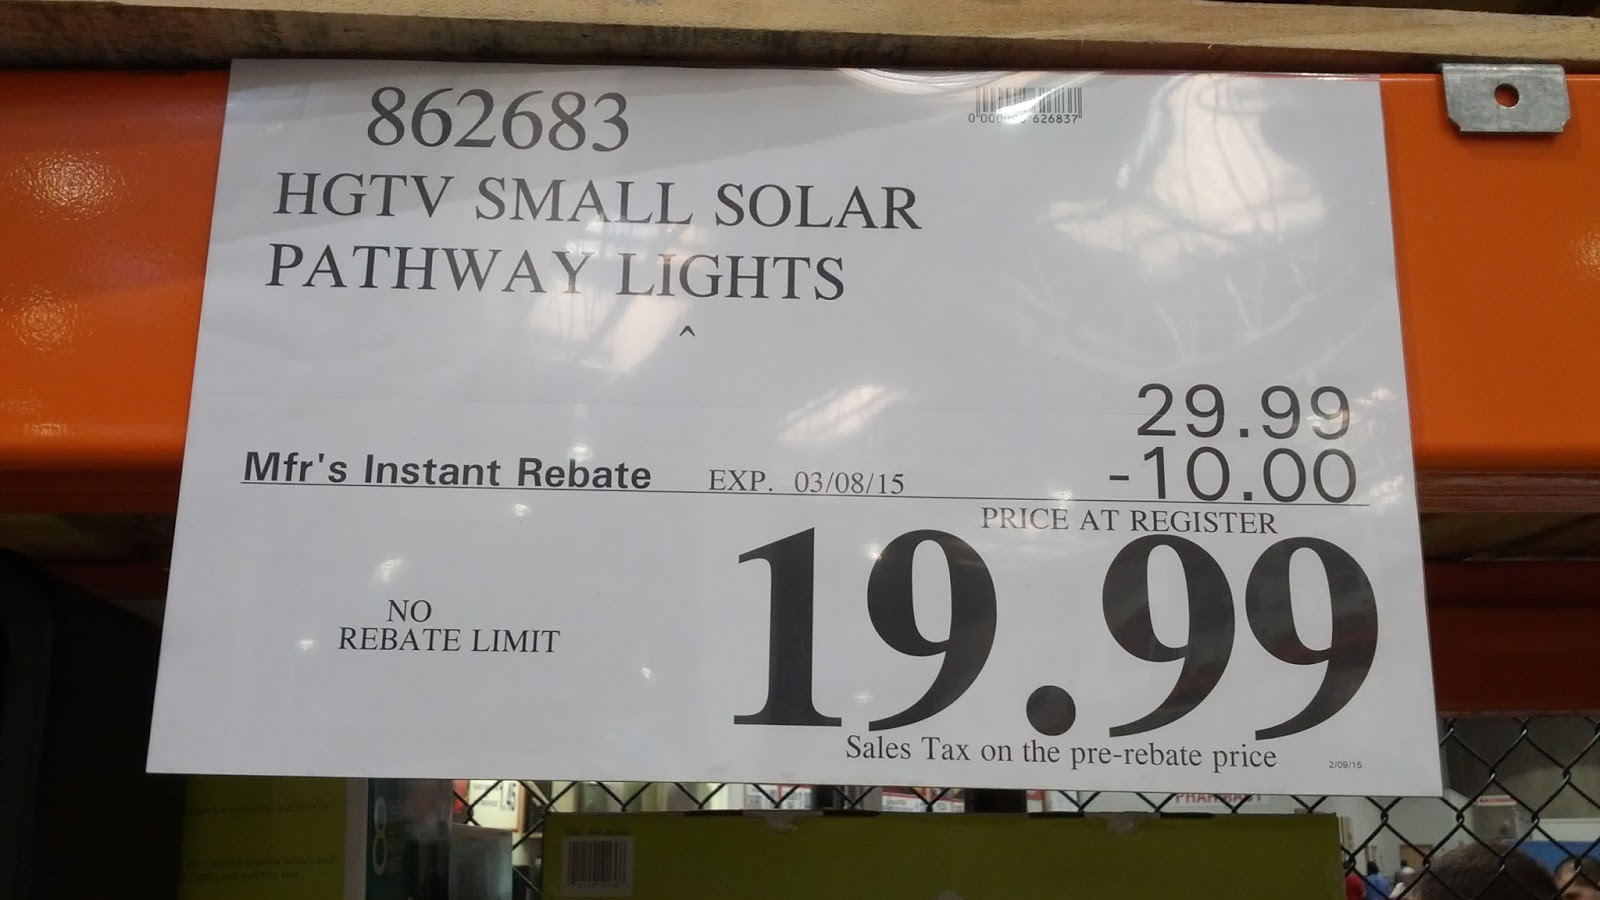 hgtv home 8 piece led solar pathway lights costco weekender. Black Bedroom Furniture Sets. Home Design Ideas